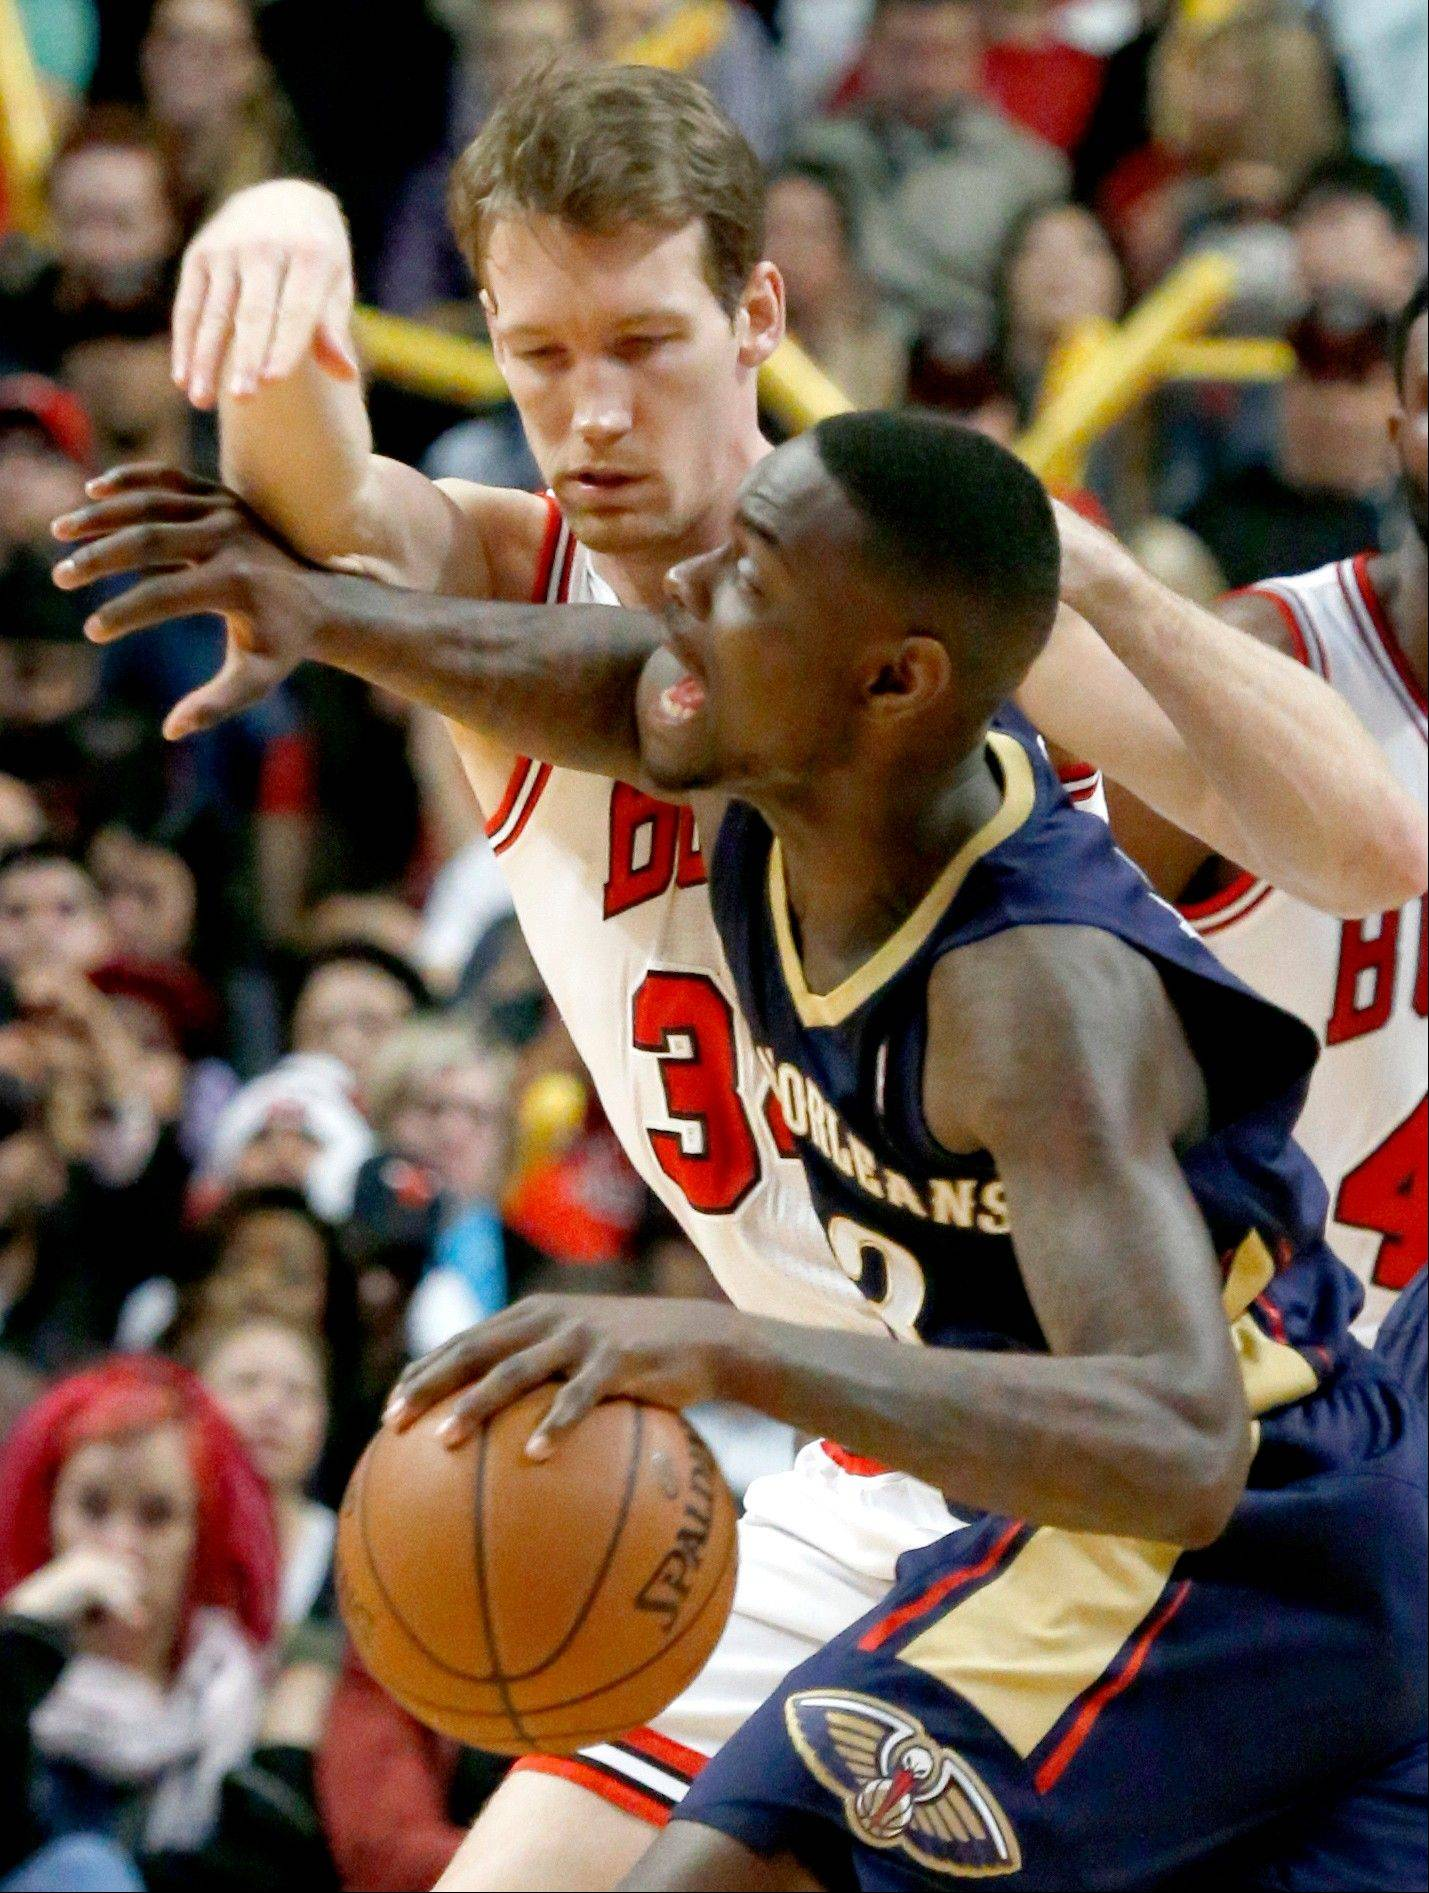 Bulls forward Mike Dunleavy pressures New Orleans Pelicans guard Anthony Morrow during a game last week.